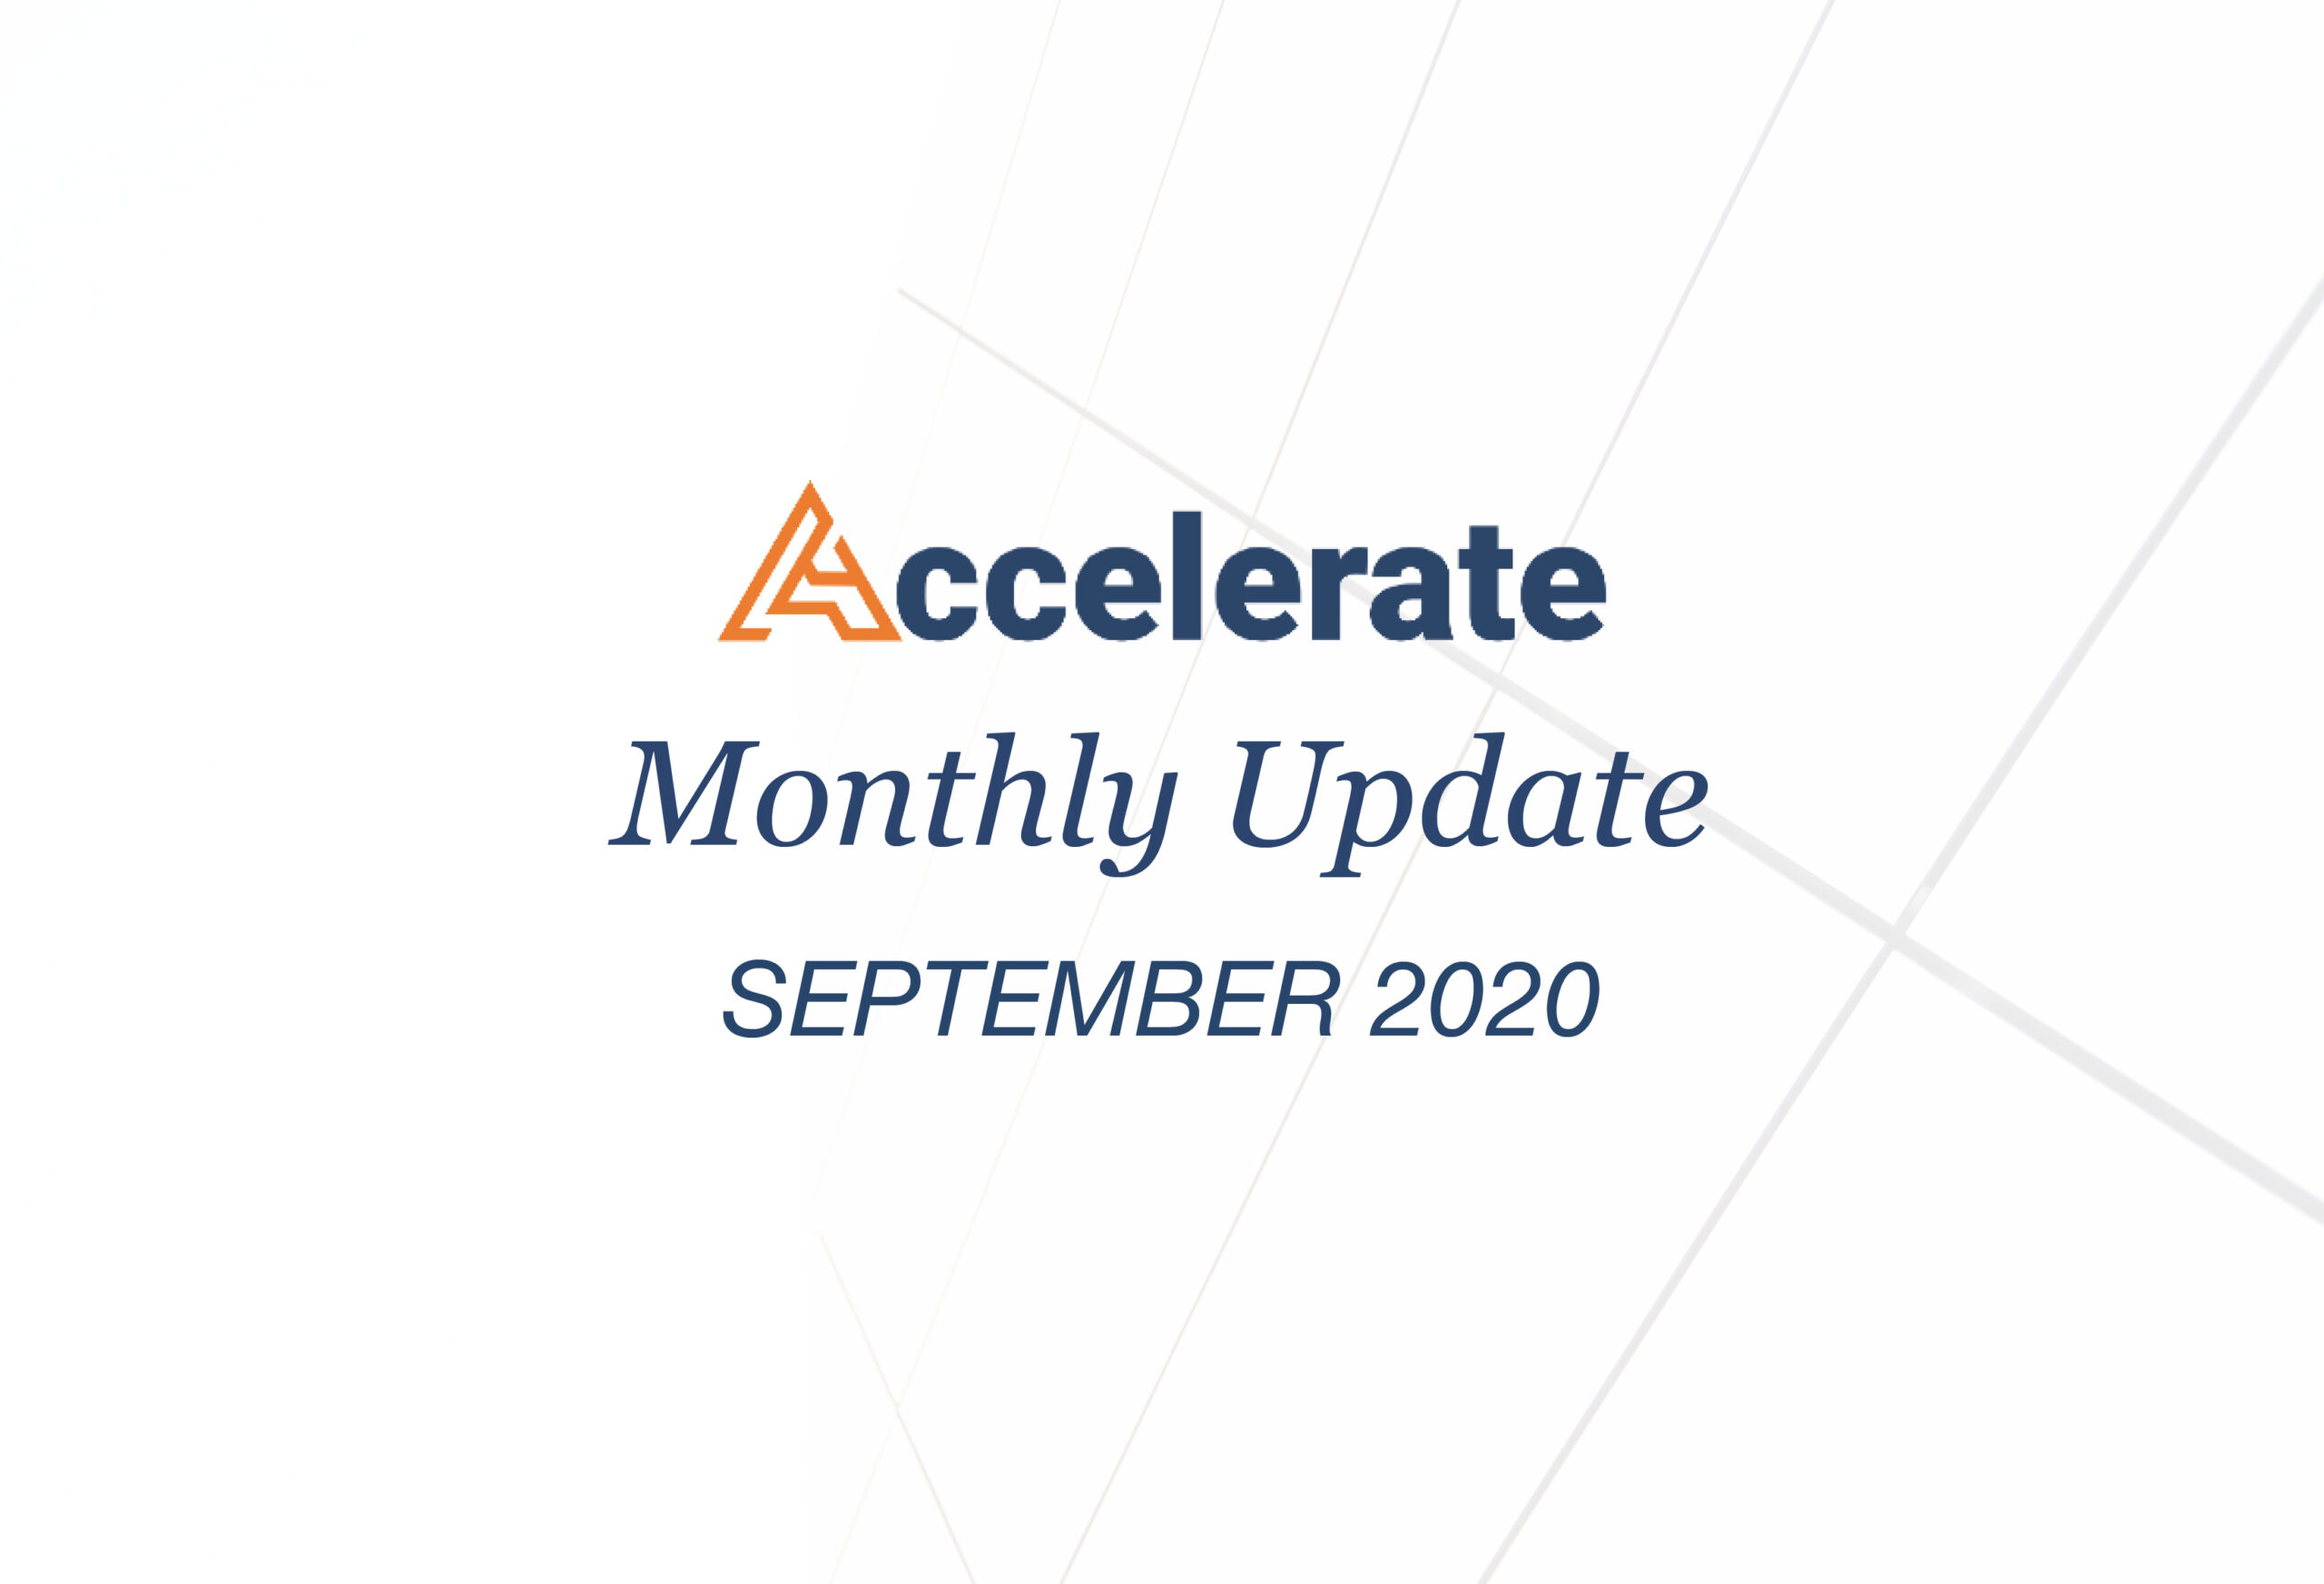 Accelerate Monthly Update- September 2020